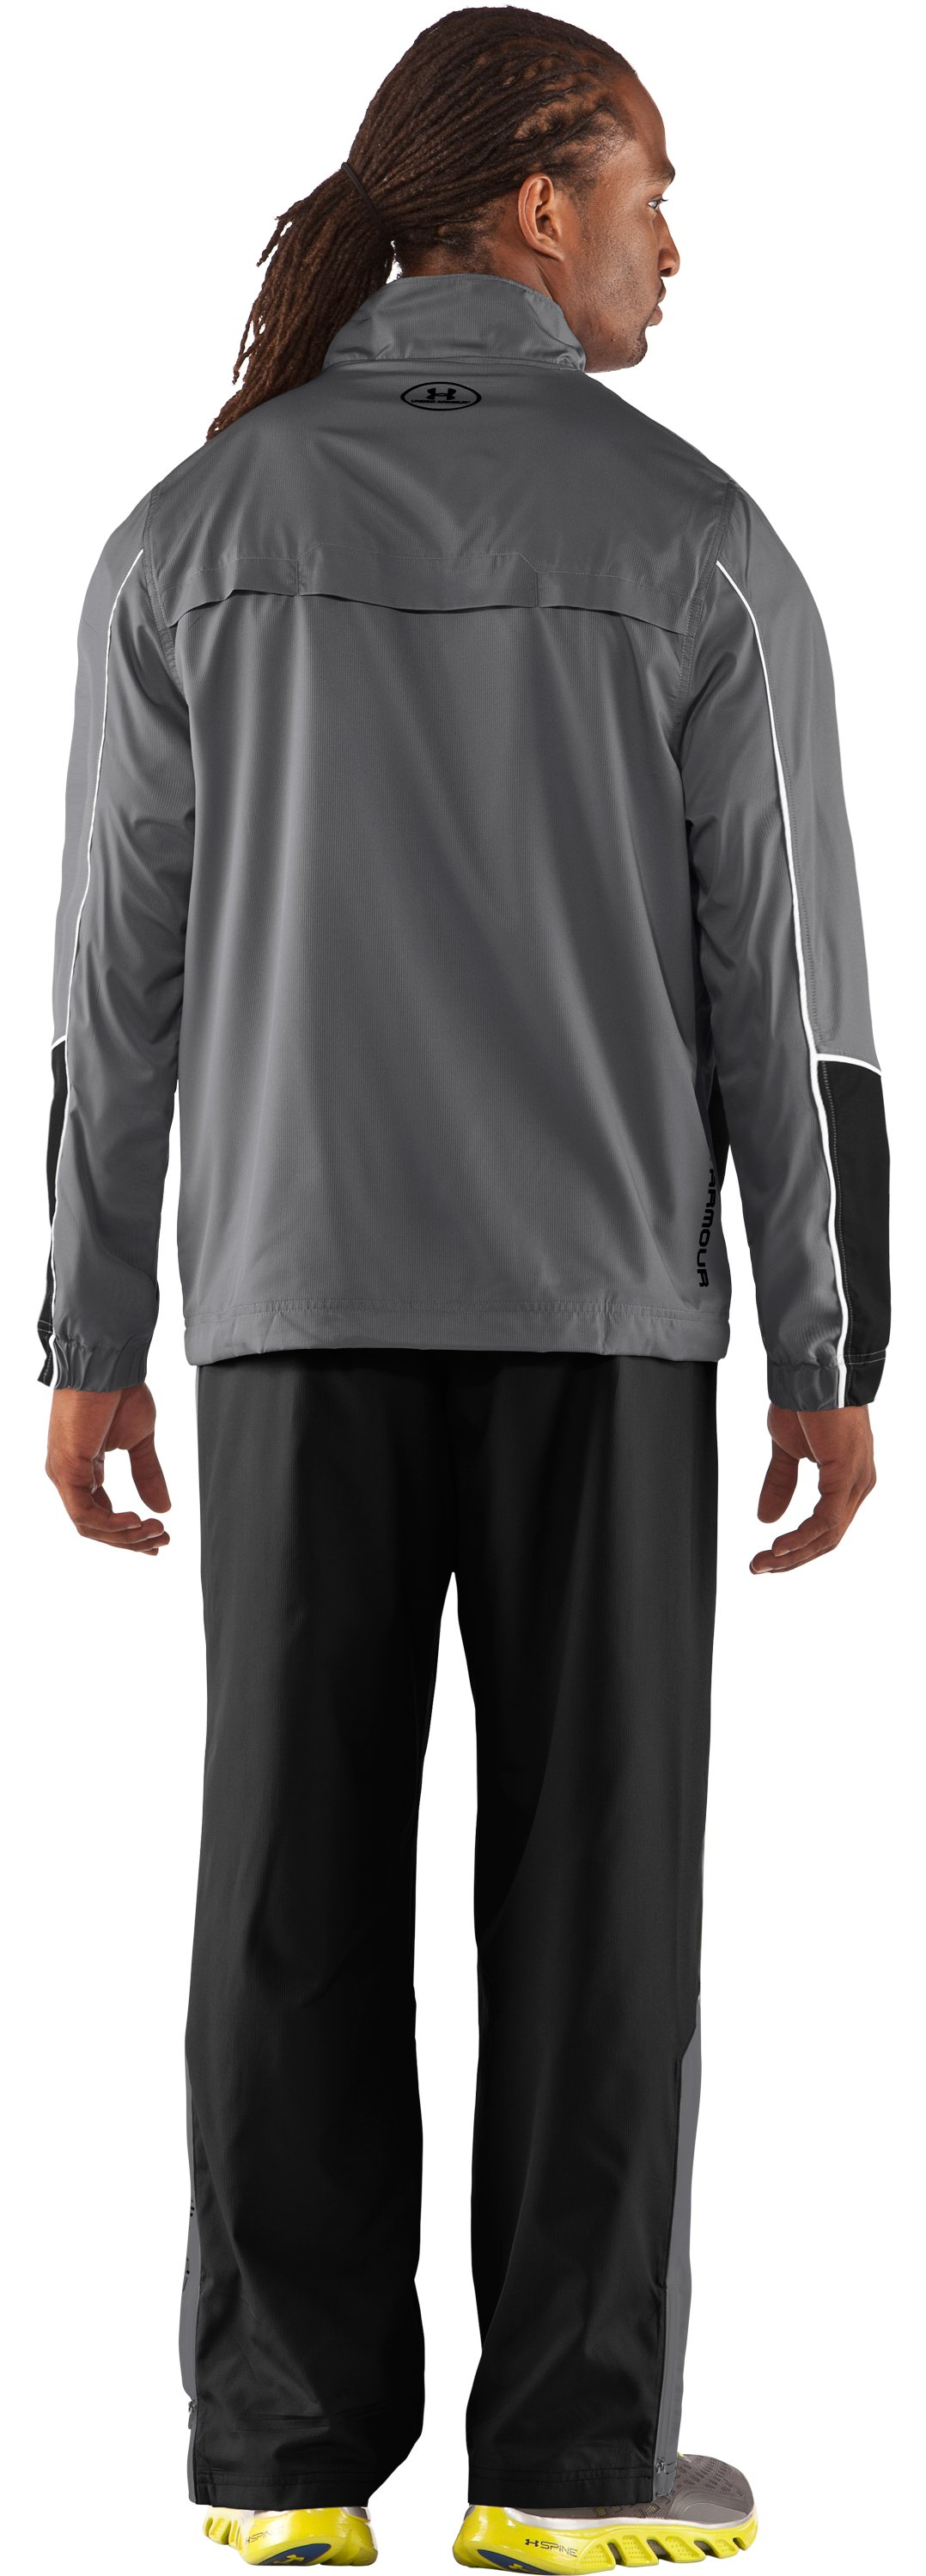 Men's UA Bandito Woven Warm-Up Jacket, Graphite, Back